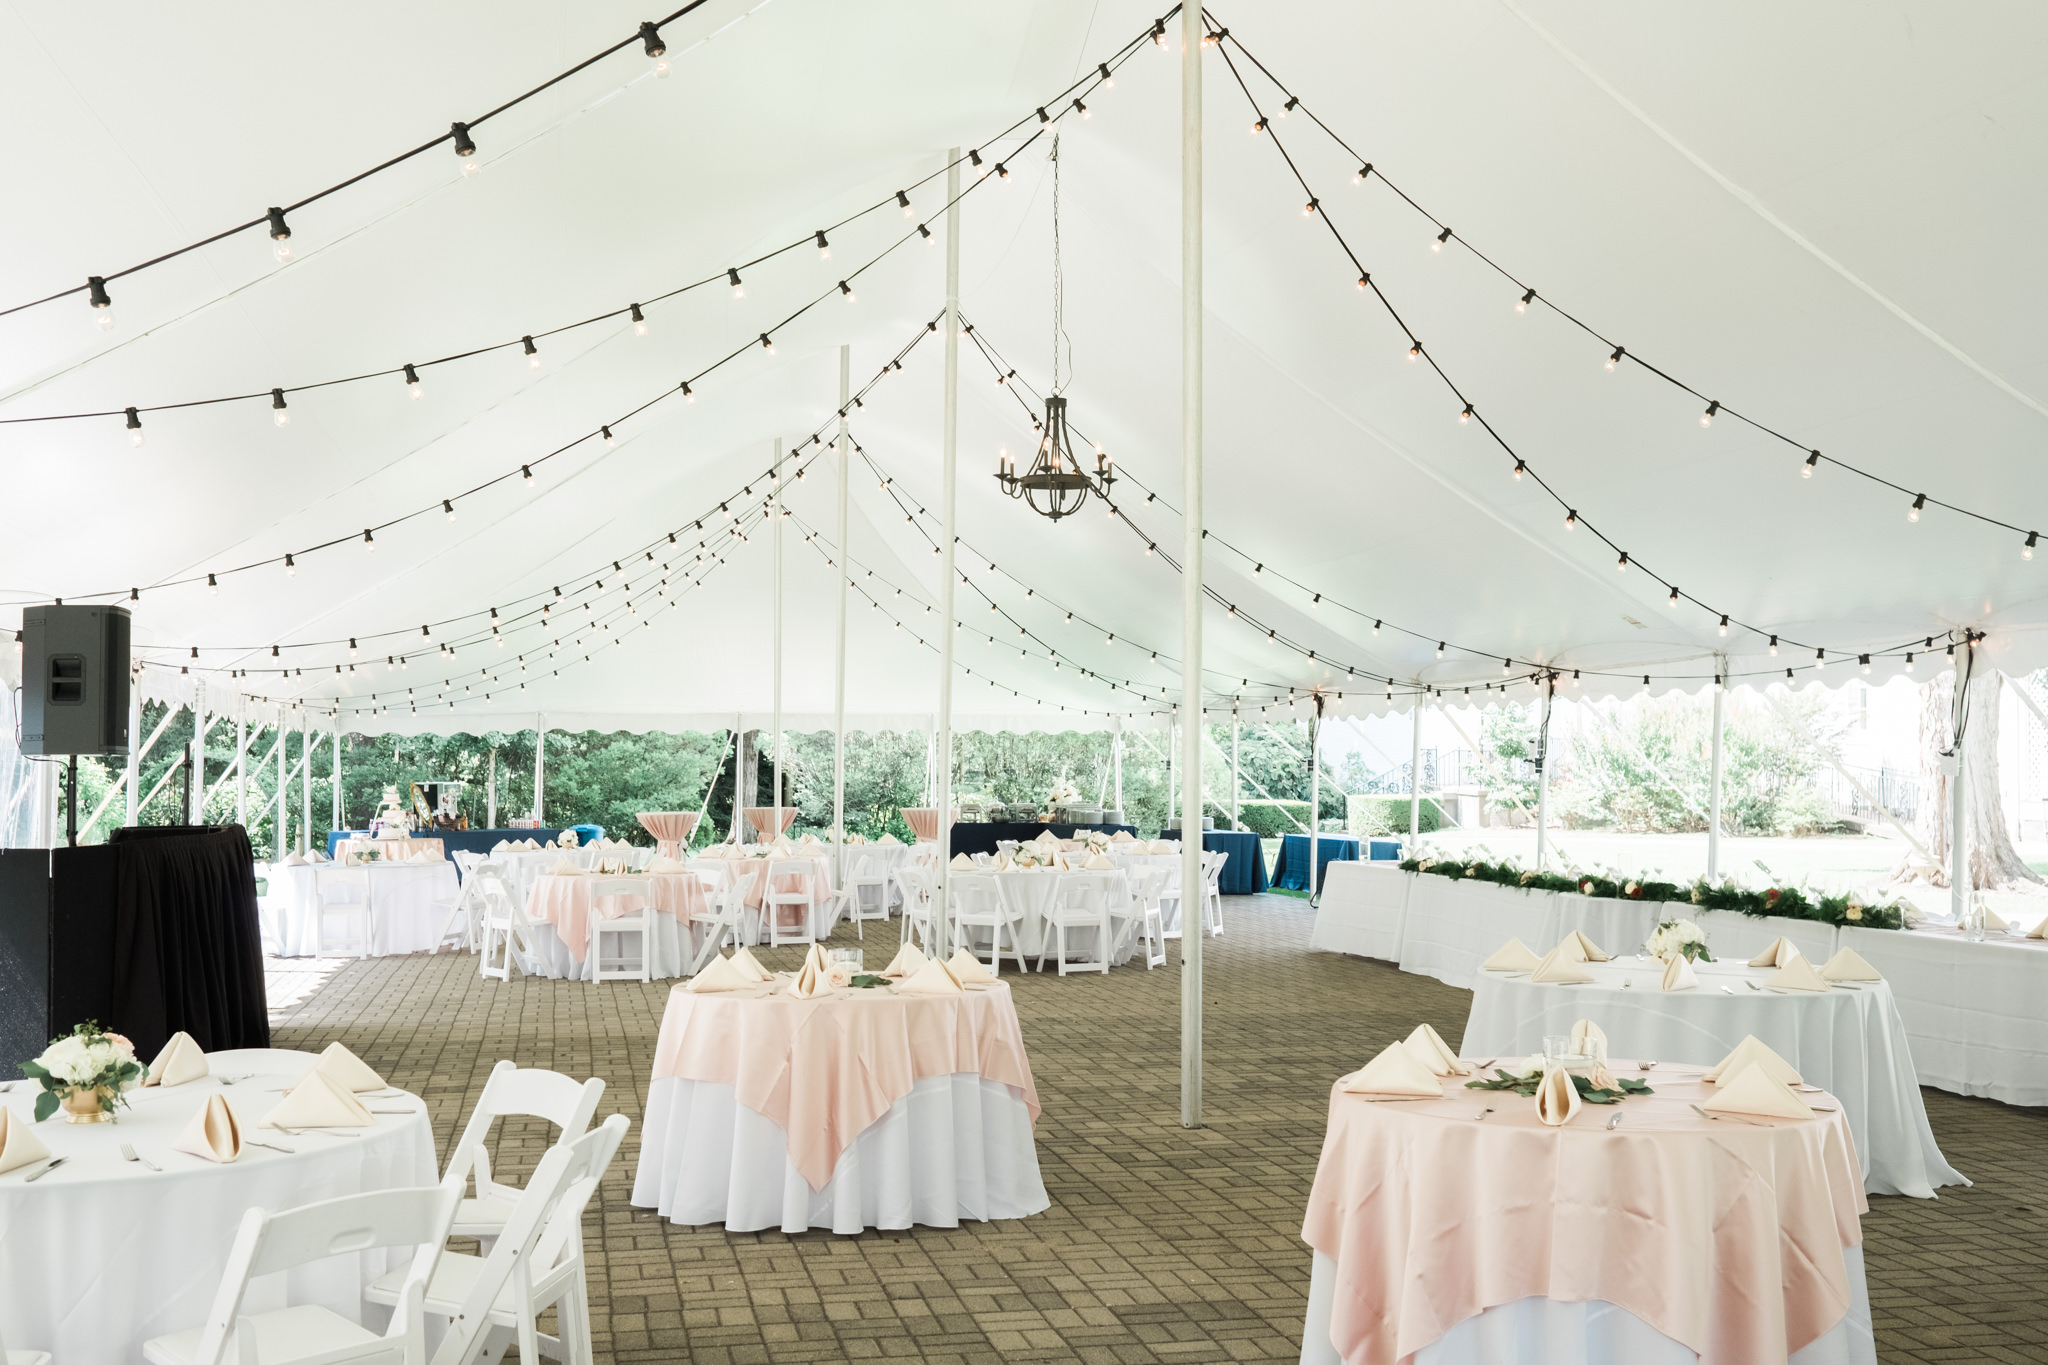 Louisville wedding venue, Whitehall House & Gardens outdoor reception area with tent